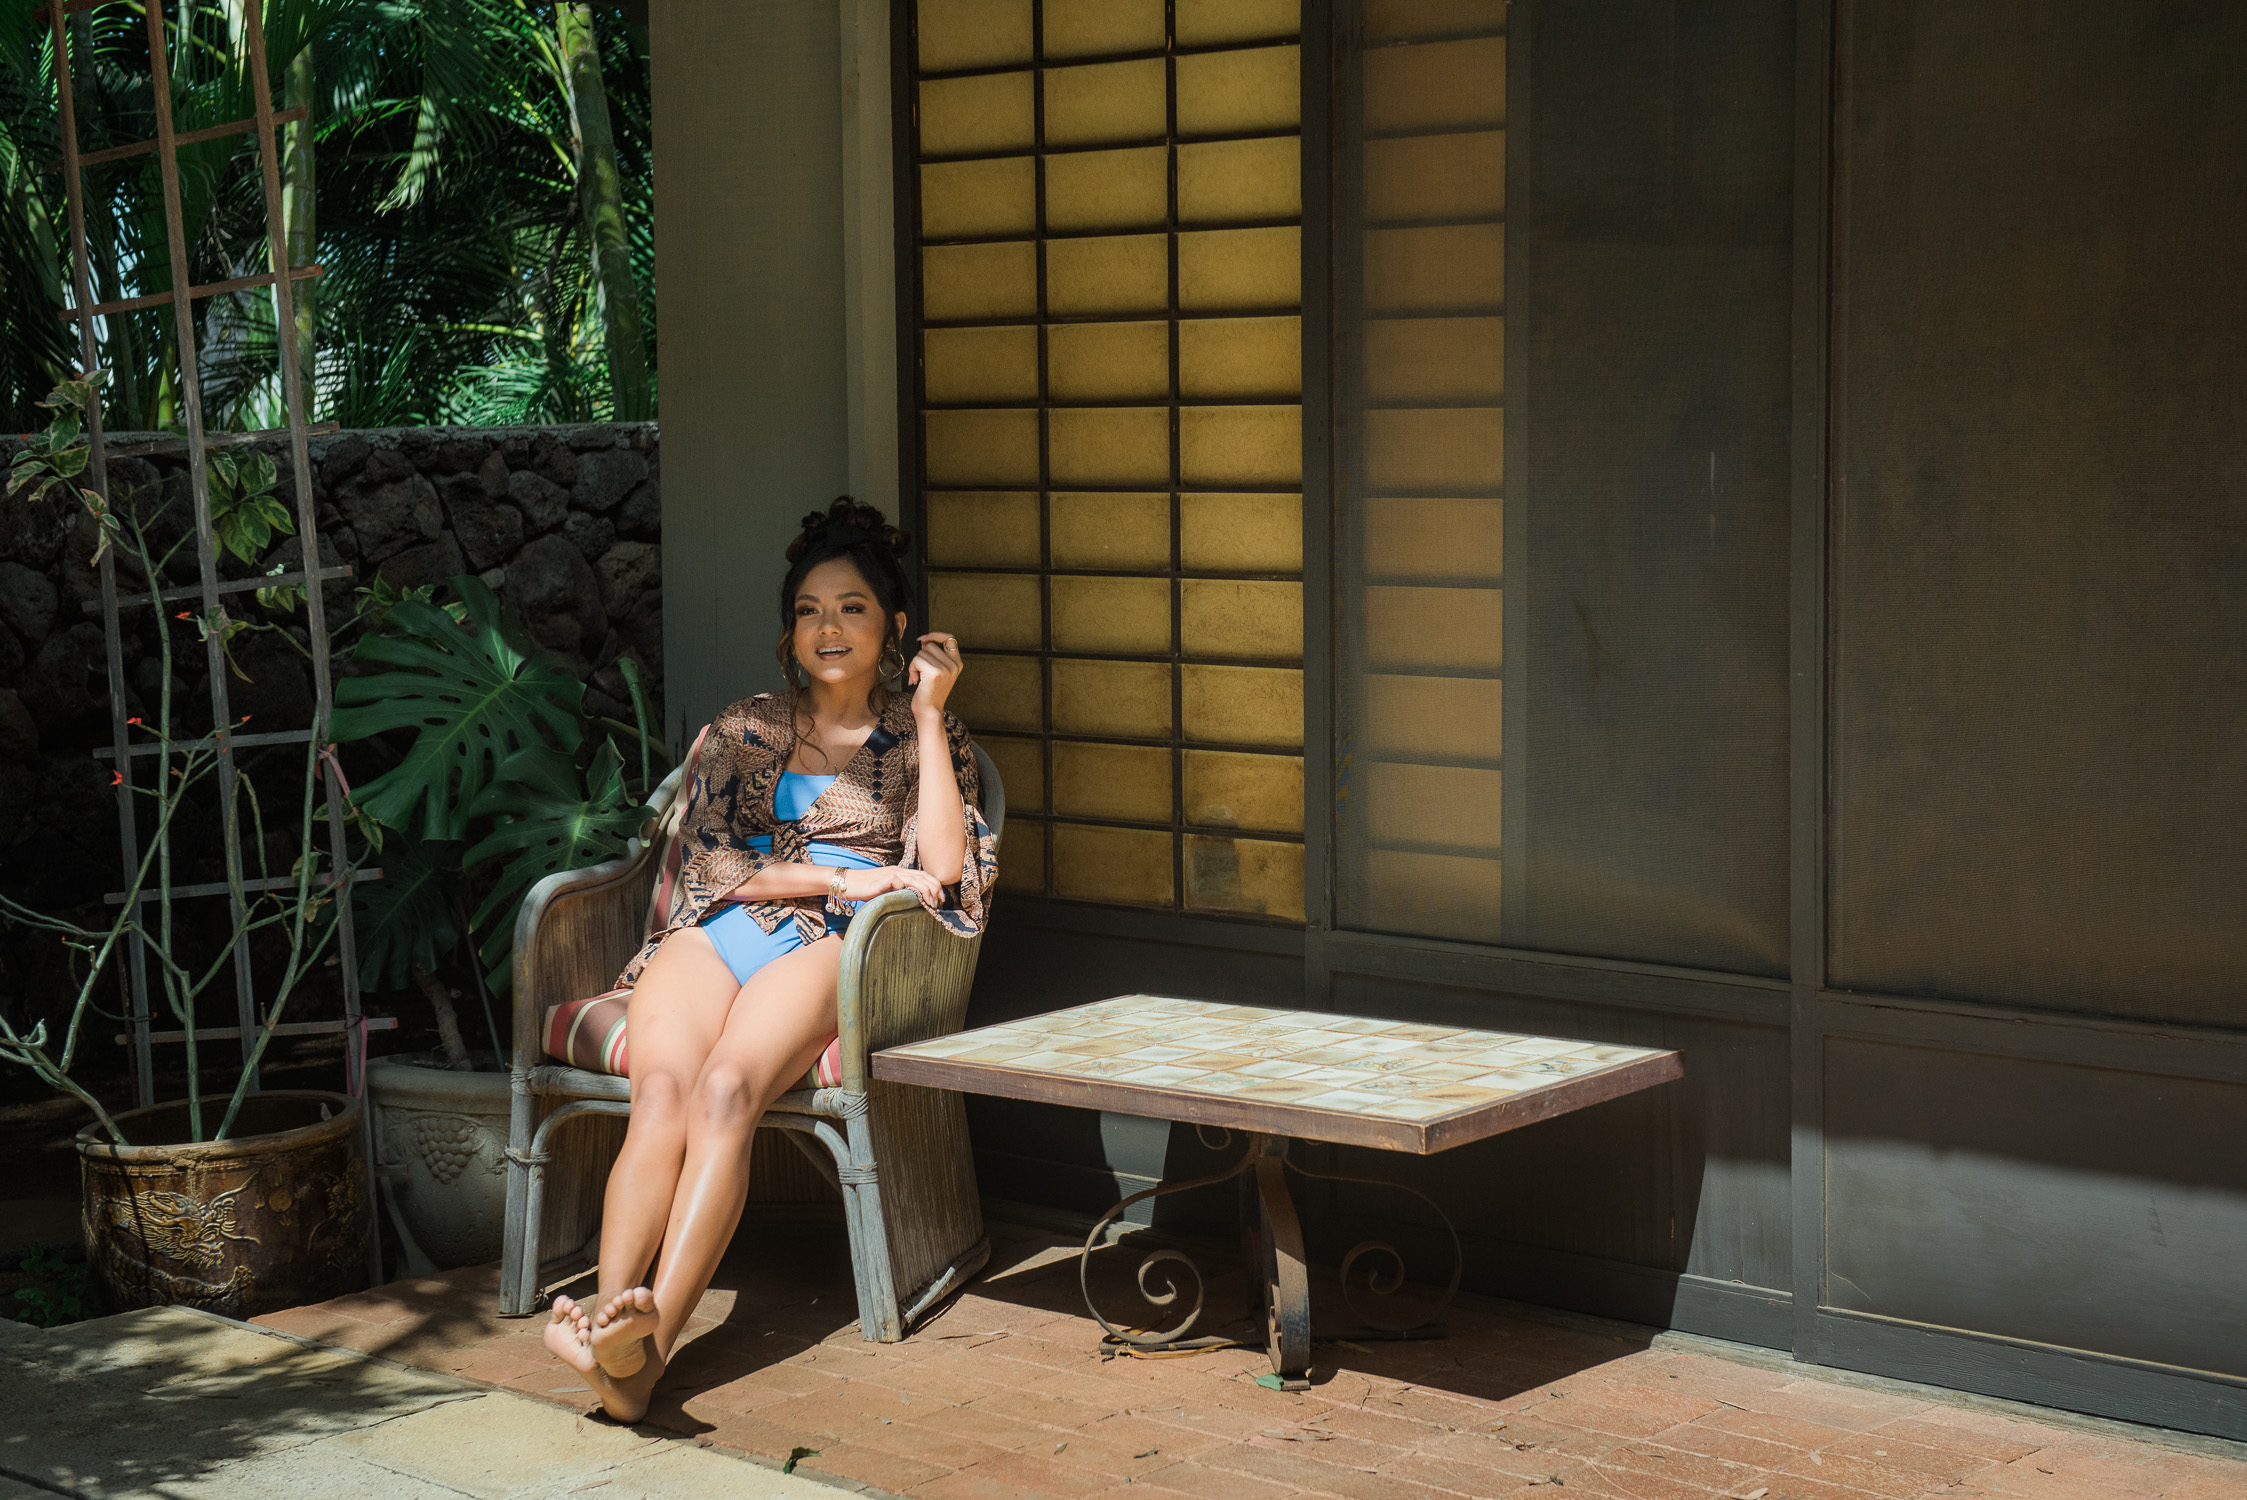 Swimsuit model sitting by Japanese shoji panels